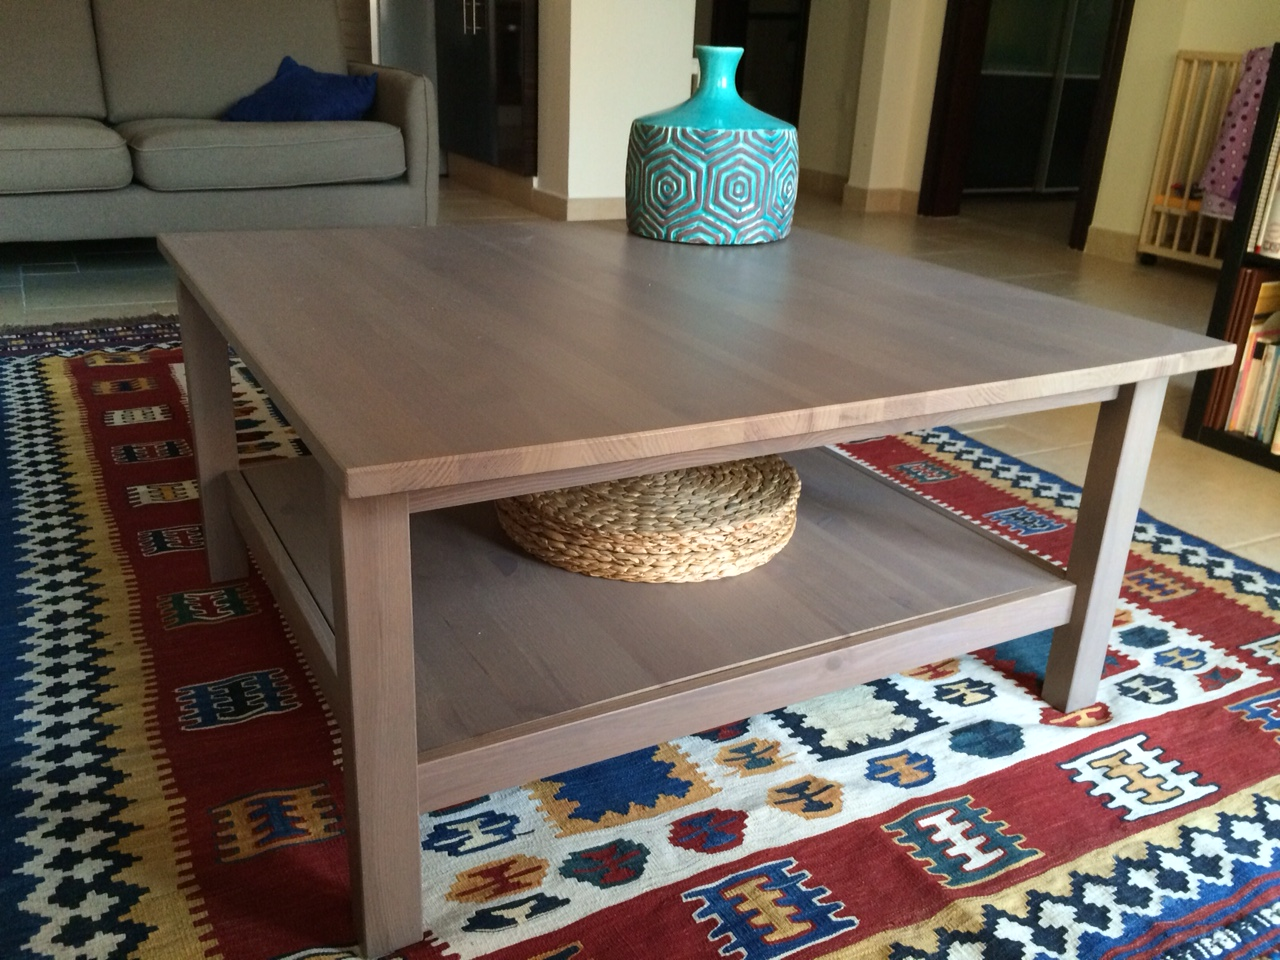 Coffee table from ikea 200qr qatar living for Table 90x90 ikea